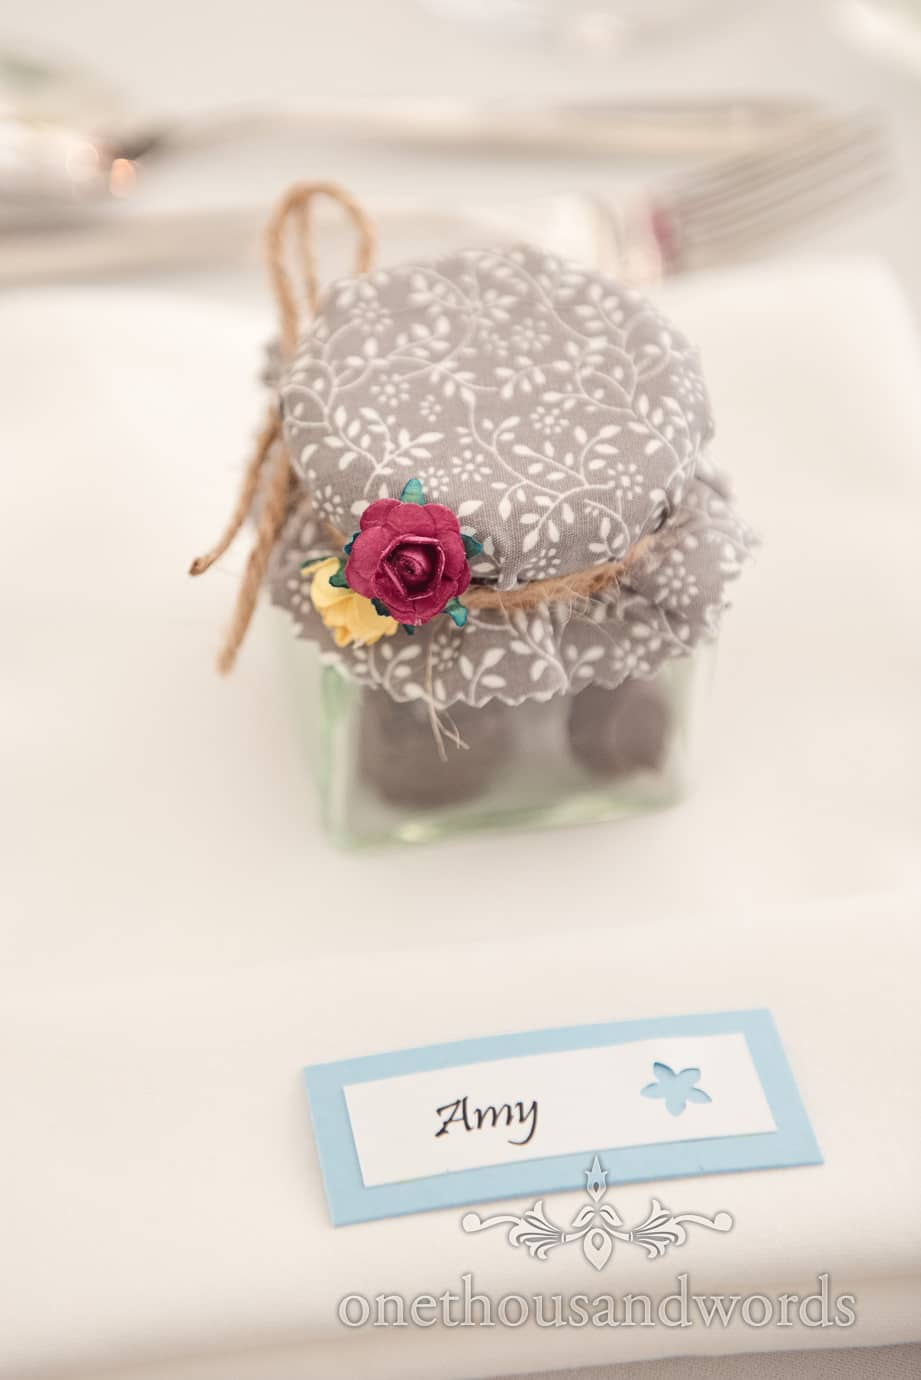 Fabric rose detail on wedding favour jam jars with home made chocolates and name sign